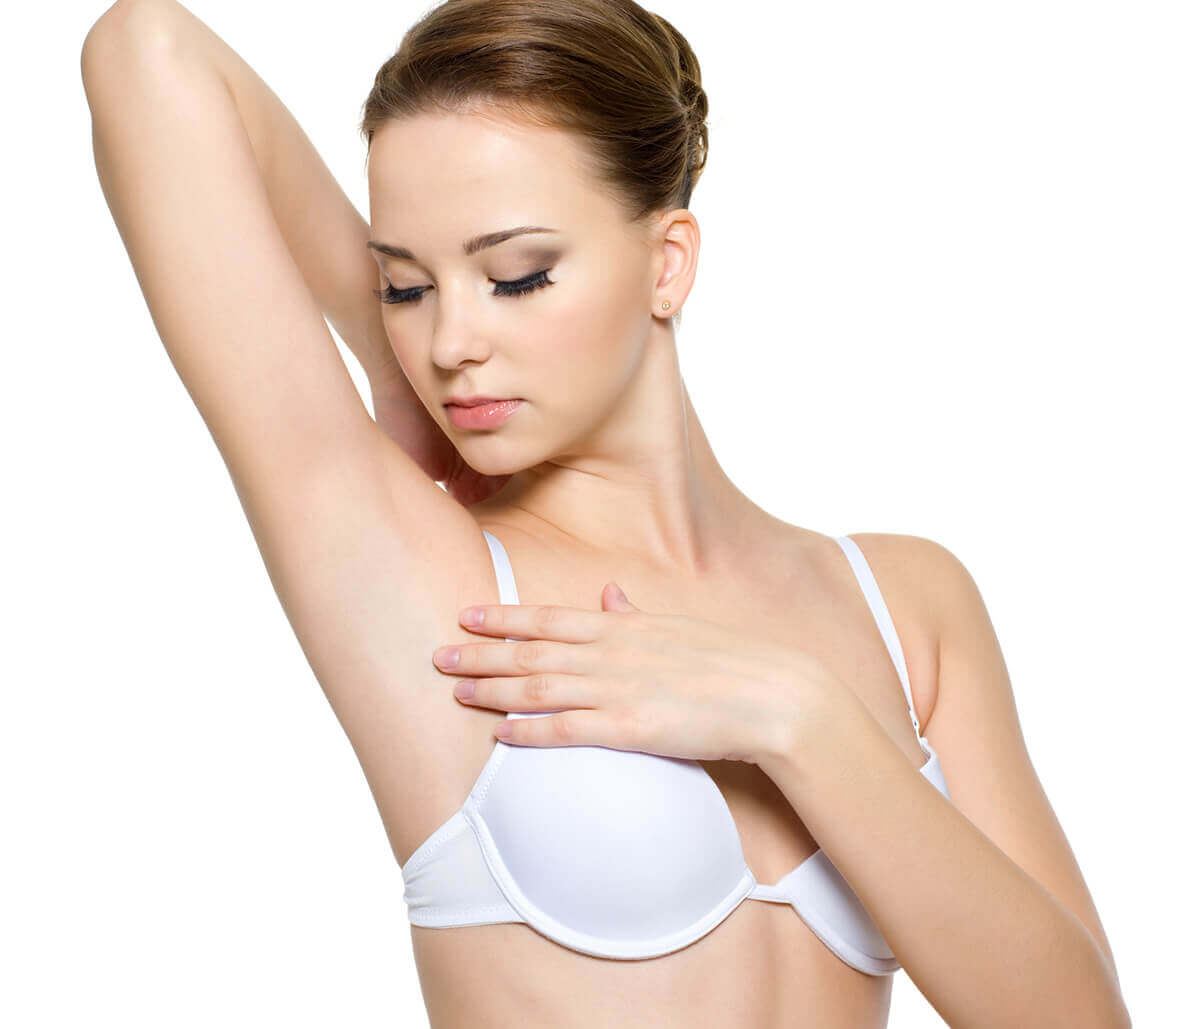 Laser Hair Removal Clinic at drs skincare in Hamilton, ON Area